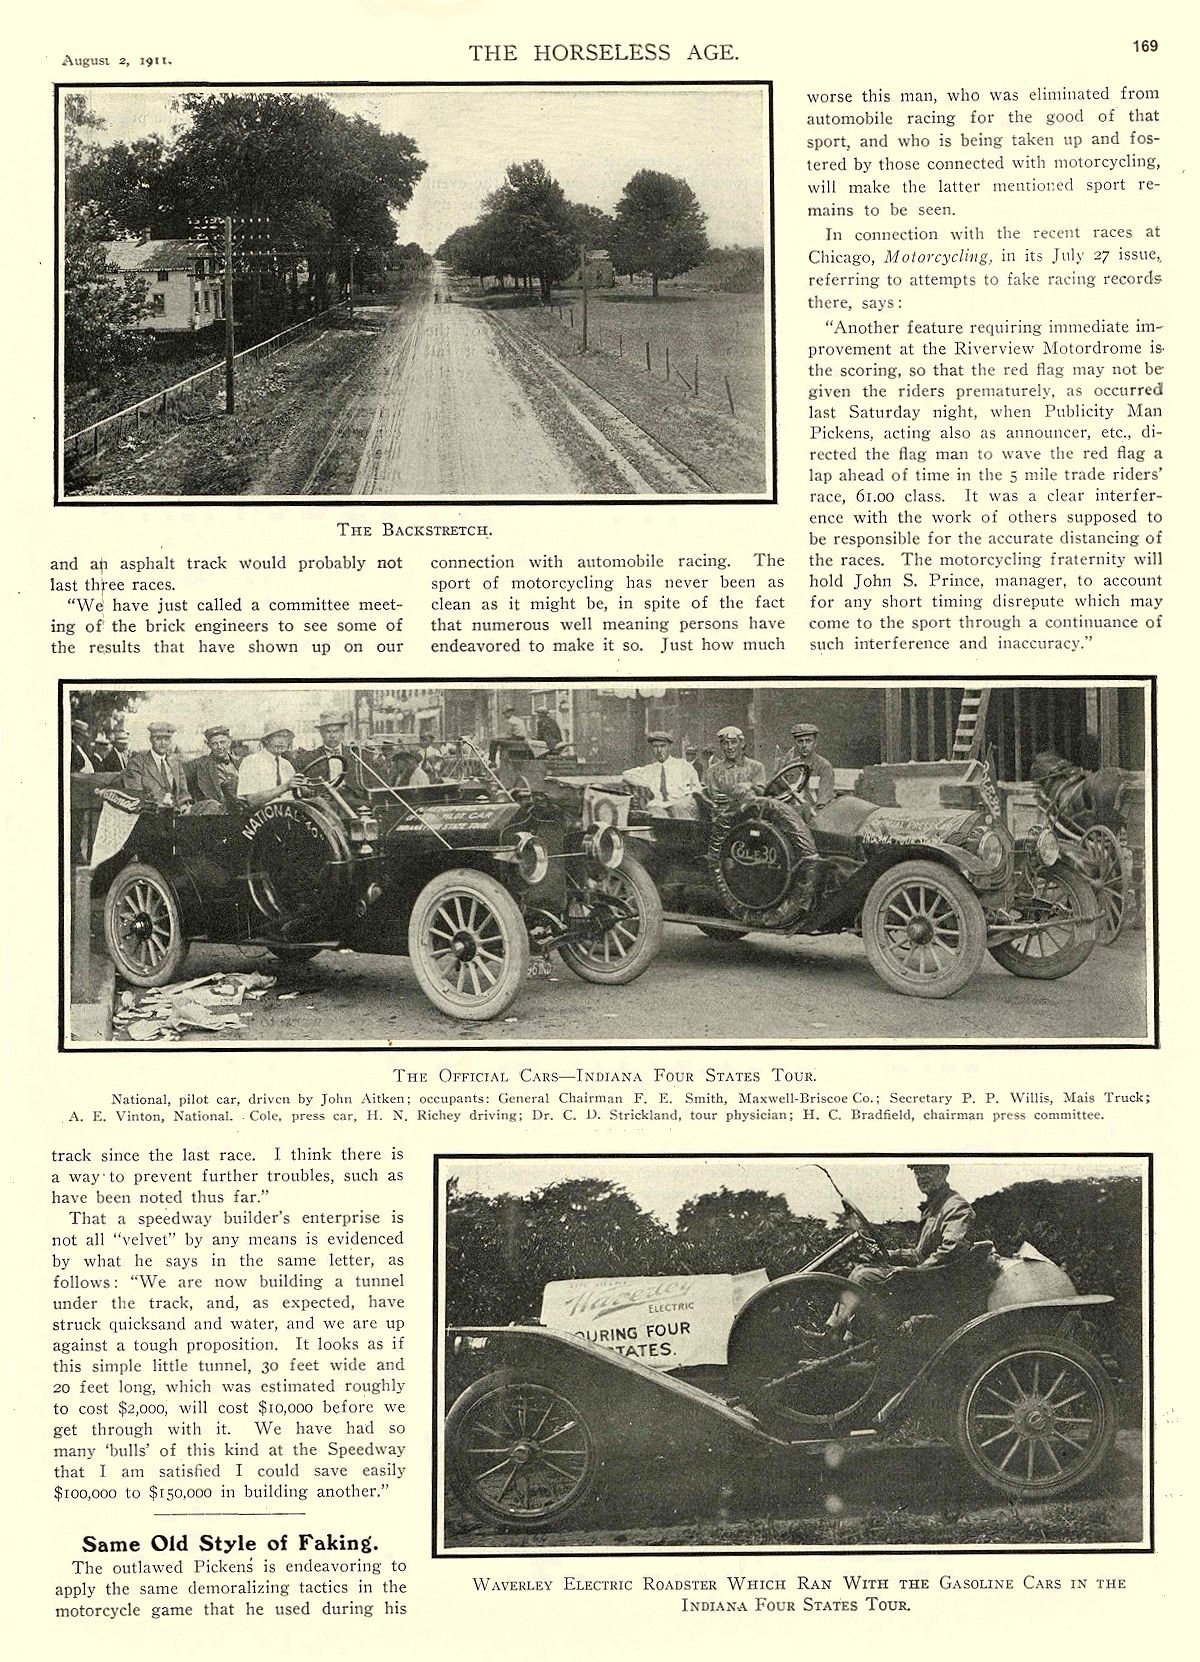 1911 8 2 NATIONAL THE OFFICIAL CARS— INDIANA FOUR STATES TOUR National Motor Vehicle Co. Indianapolis, IND THE HORSELESS AGE August 2, 1911 8.25″x12″ page 169